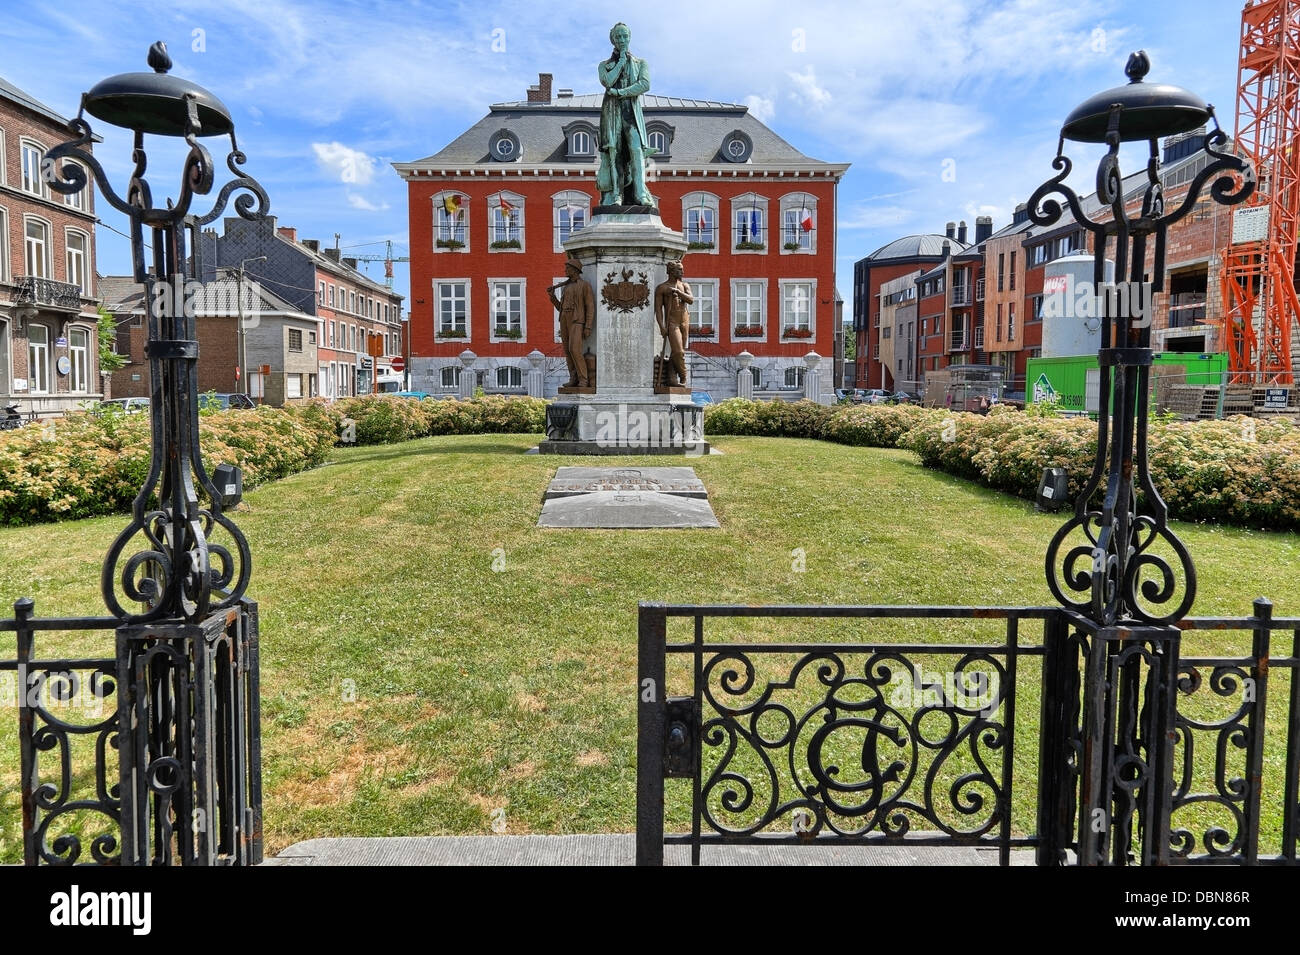 View of the Seraing city hall, a town in the south of Belgium. The statue at the foreground is for John cockerill. - Stock Image